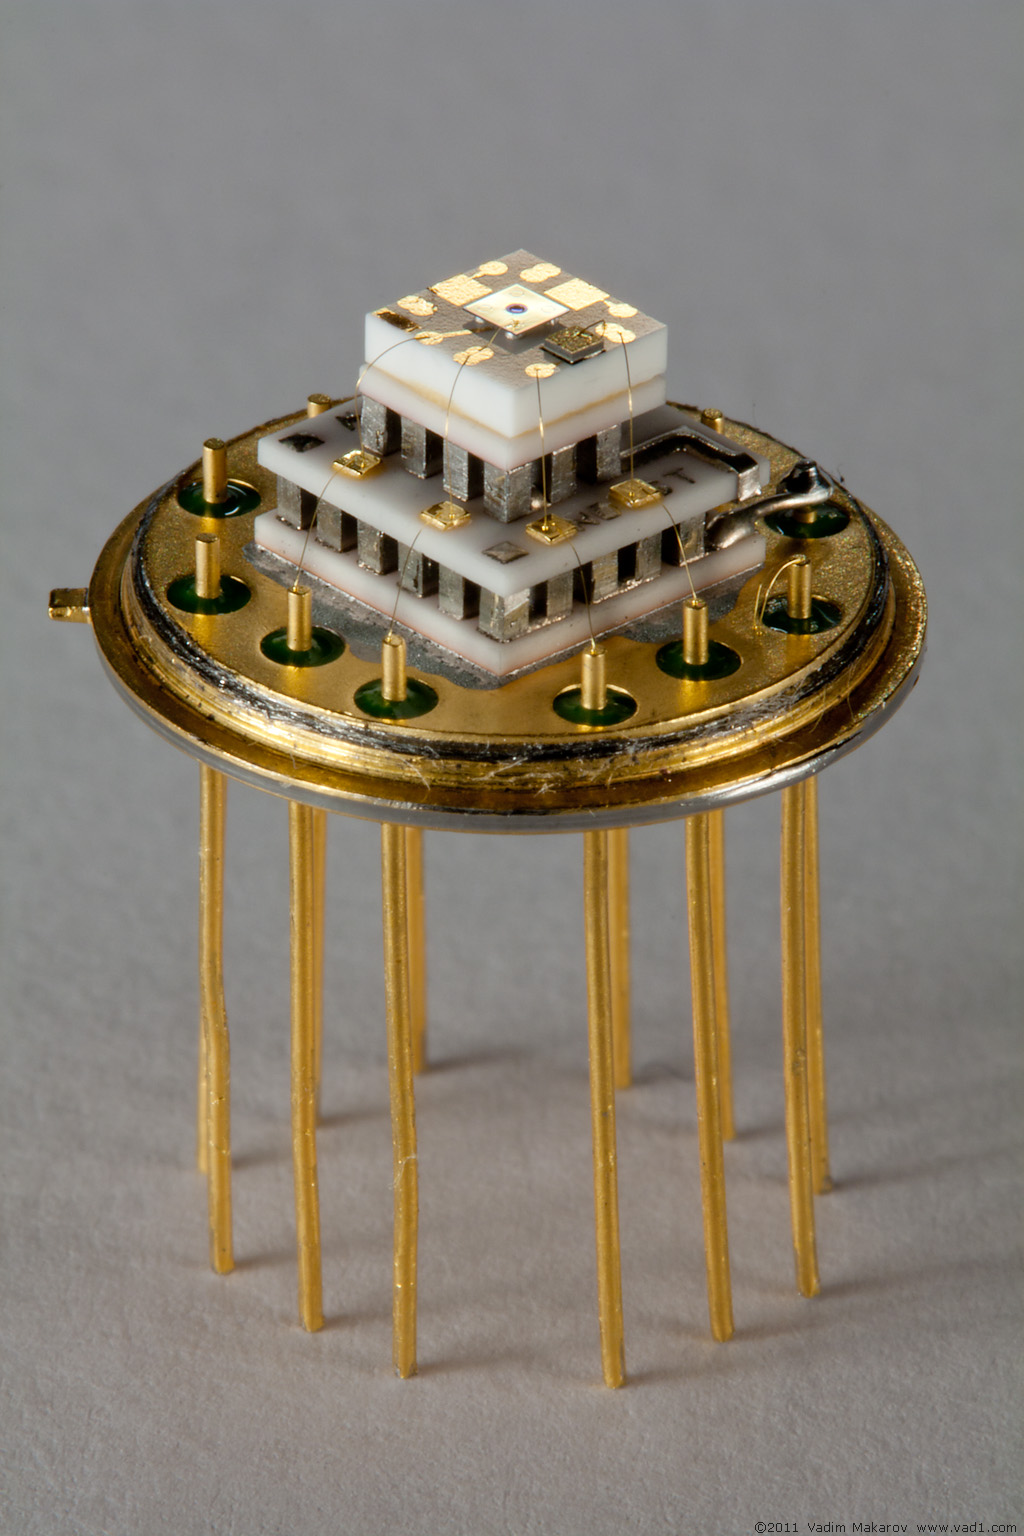 Hacking single photon detector module